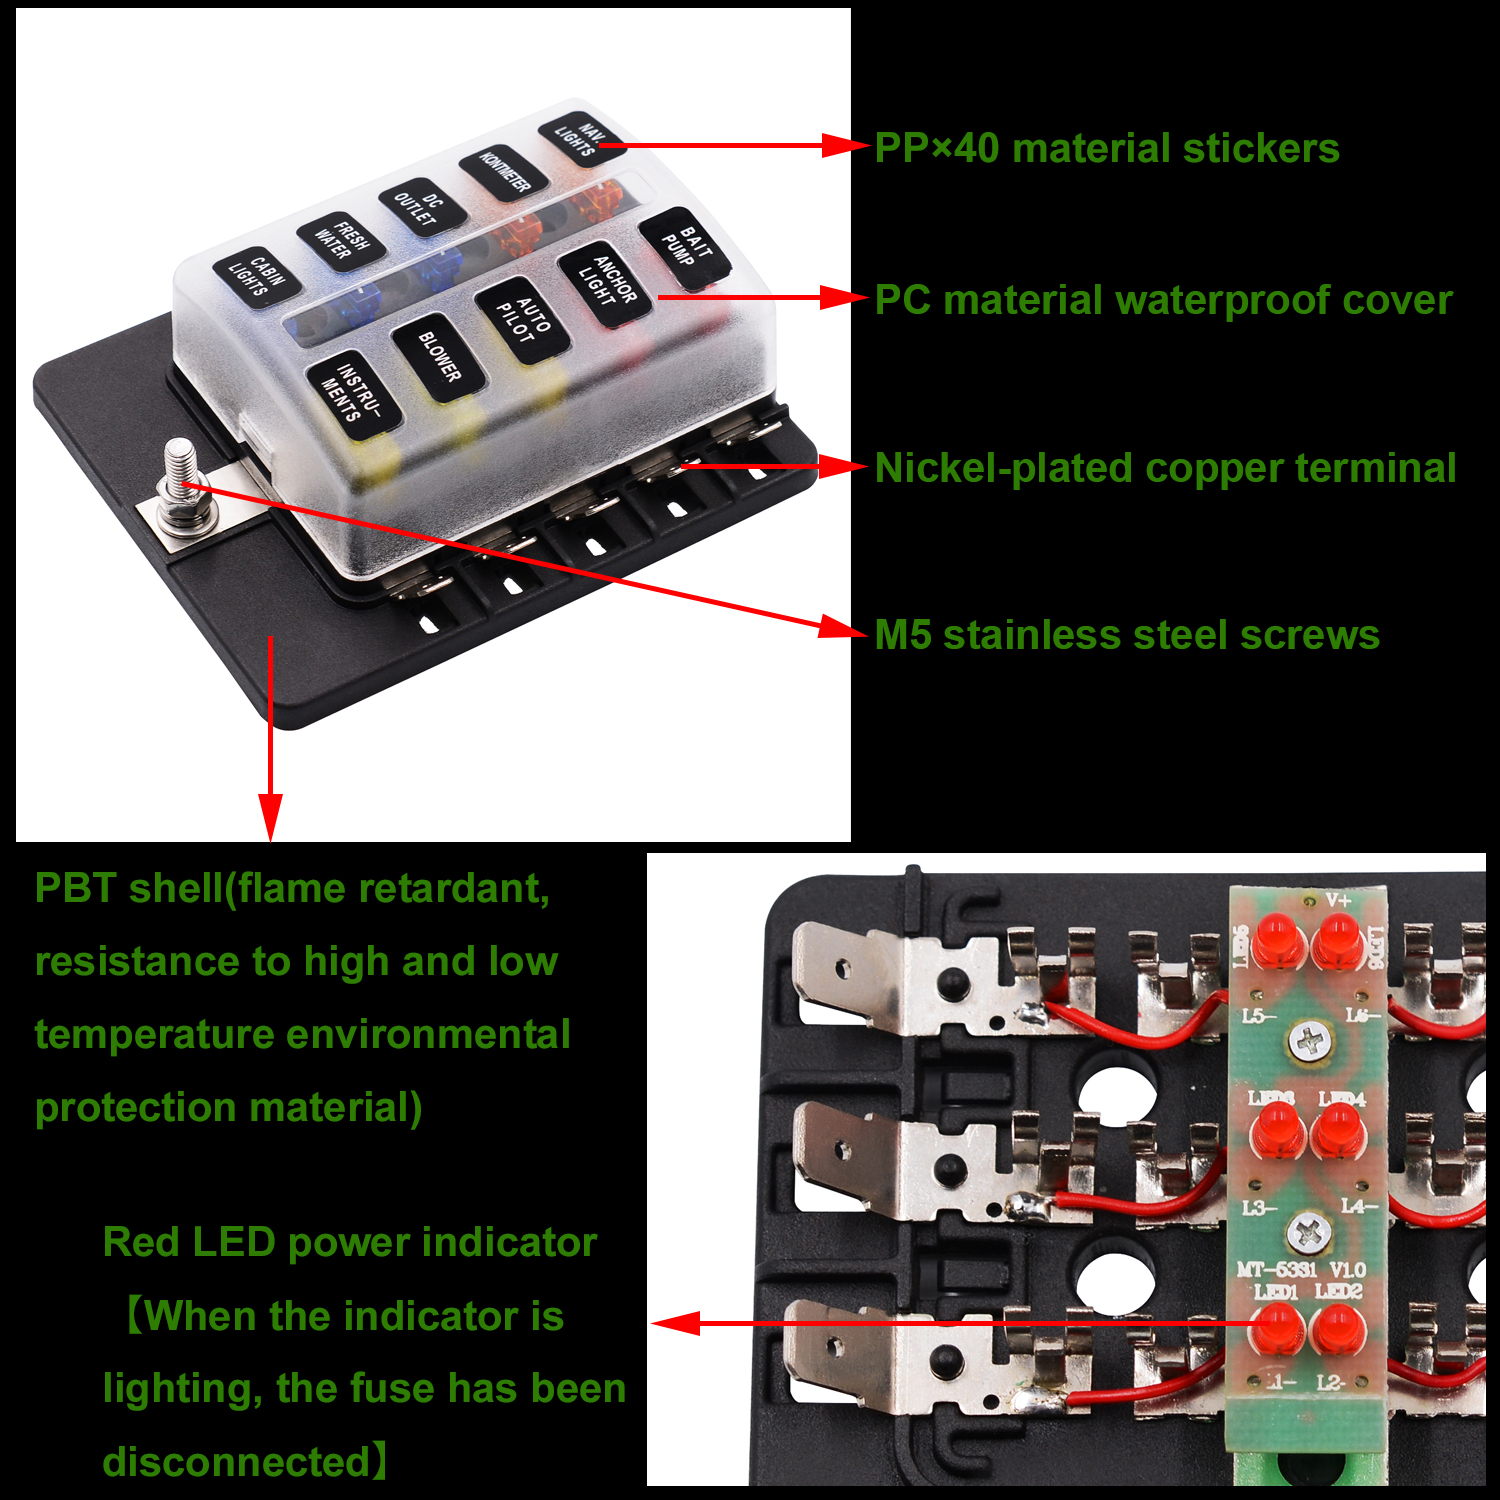 Imars Cs 579b3 10 Way Blade Fuse Box Holder With Led Warning Light Lights For